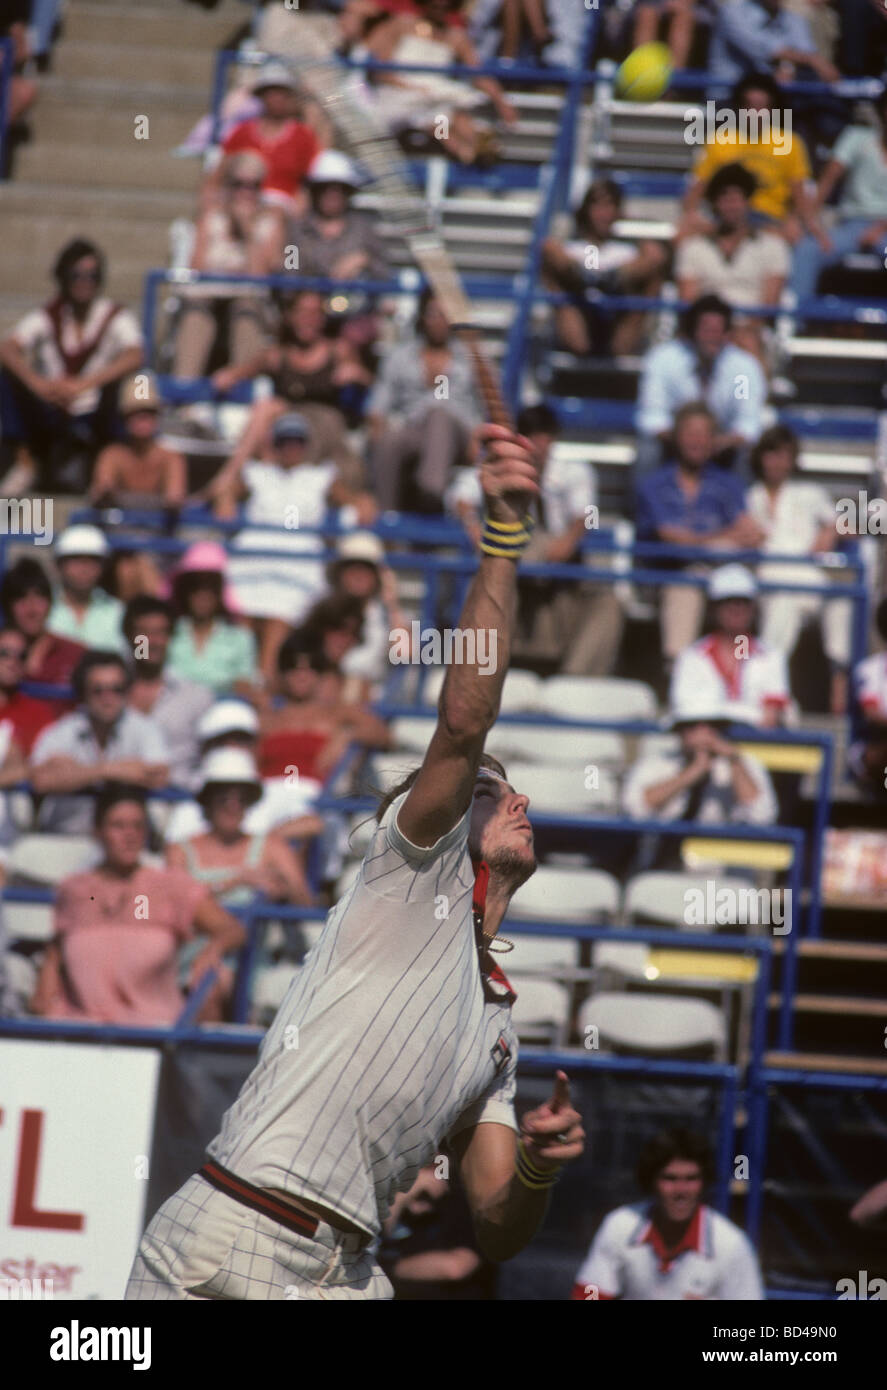 Bjorn Borg SWE at the 1978 US Open Tennis Championships Stock Photo